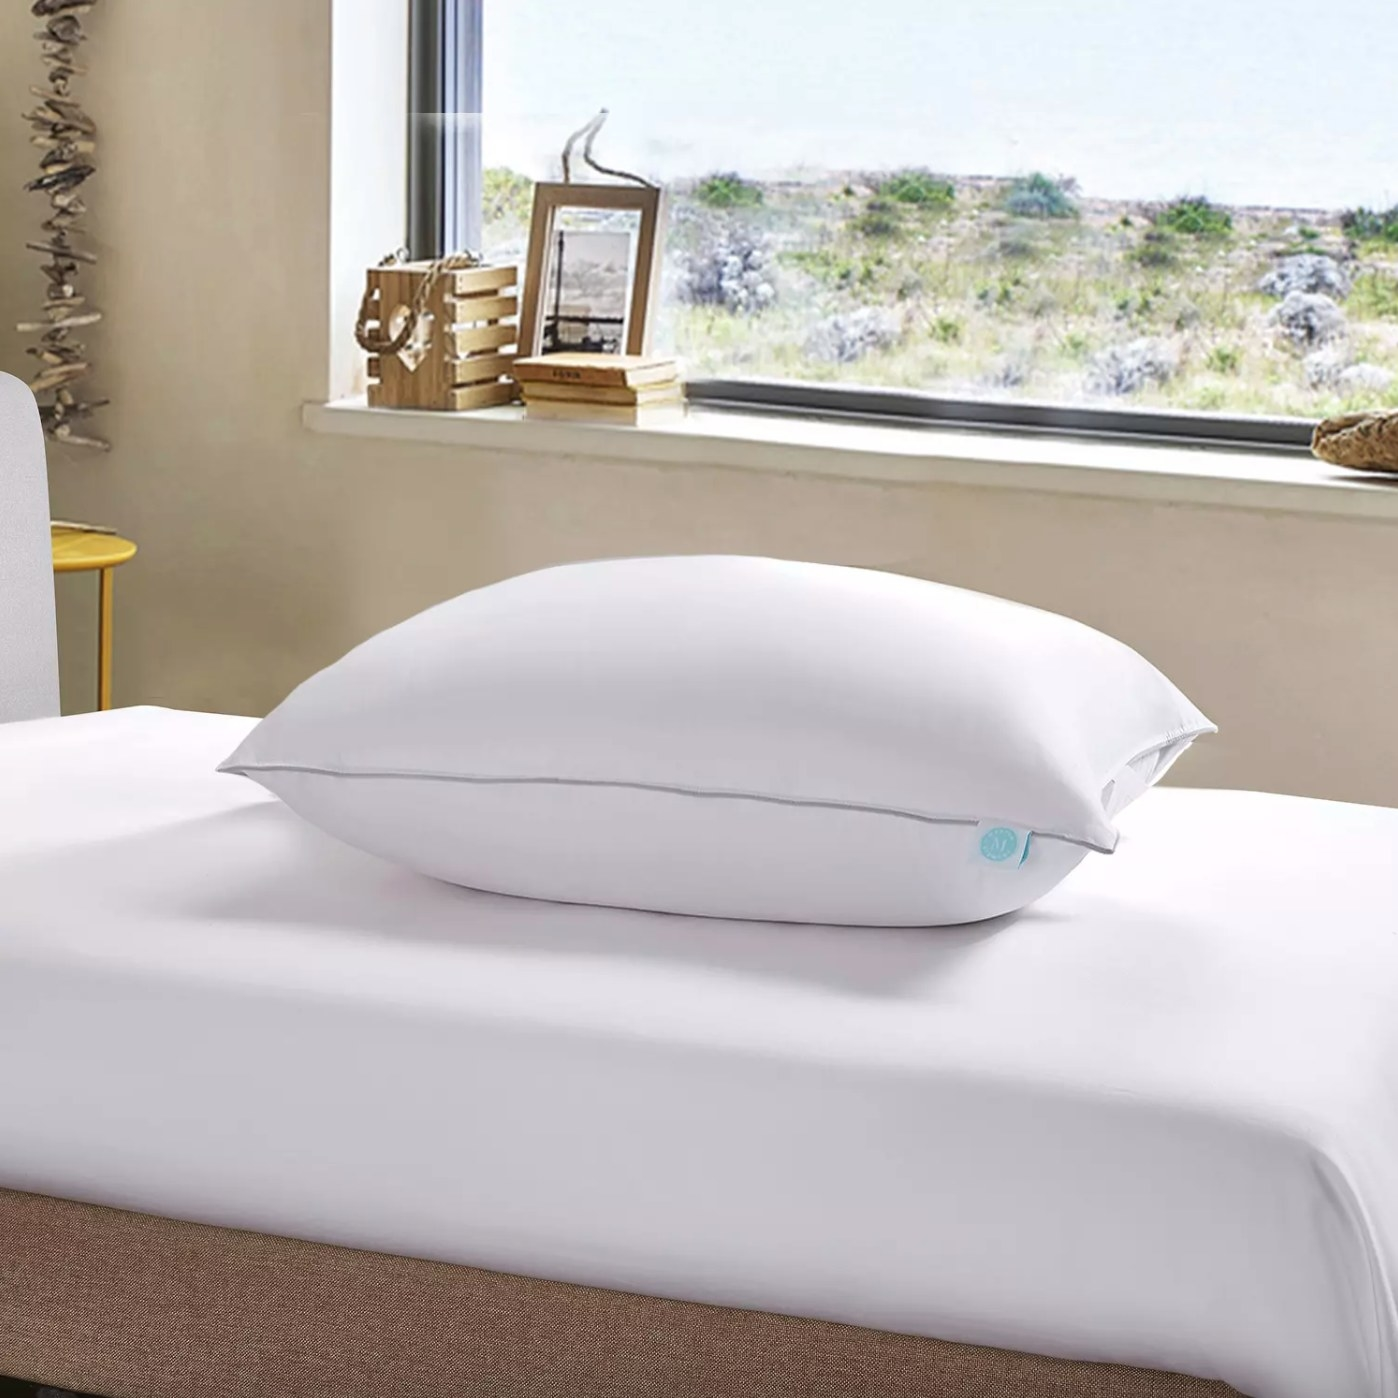 The 400 thread count down pillow in white on a bed